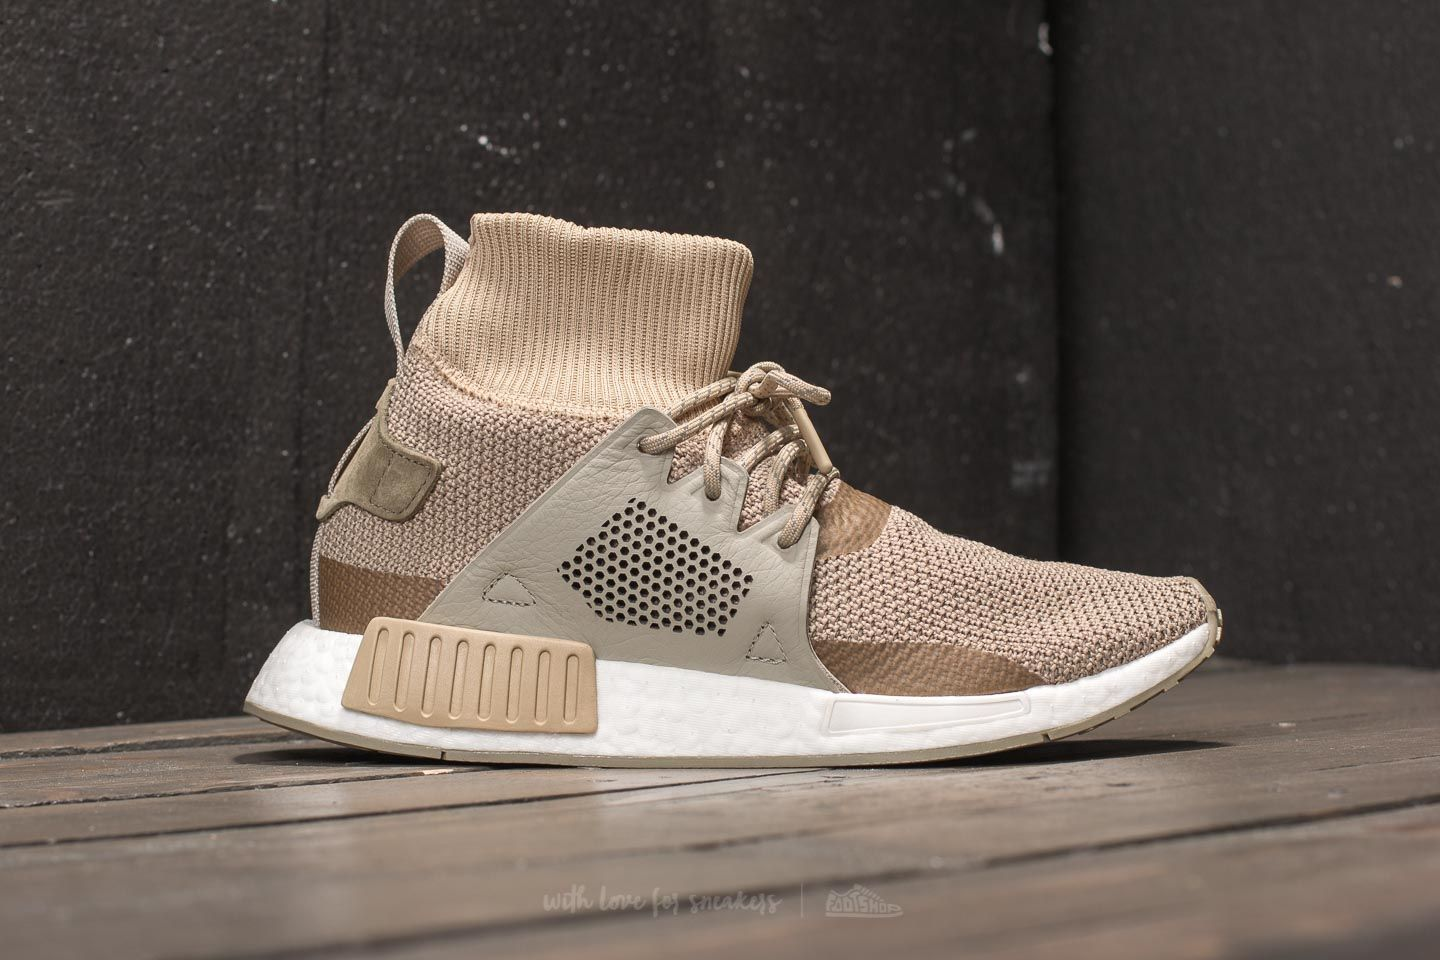 At Raw Winter A Nmd White Adidas Ftw Beige Great xr1 Gold Sesame MqUzVGpS